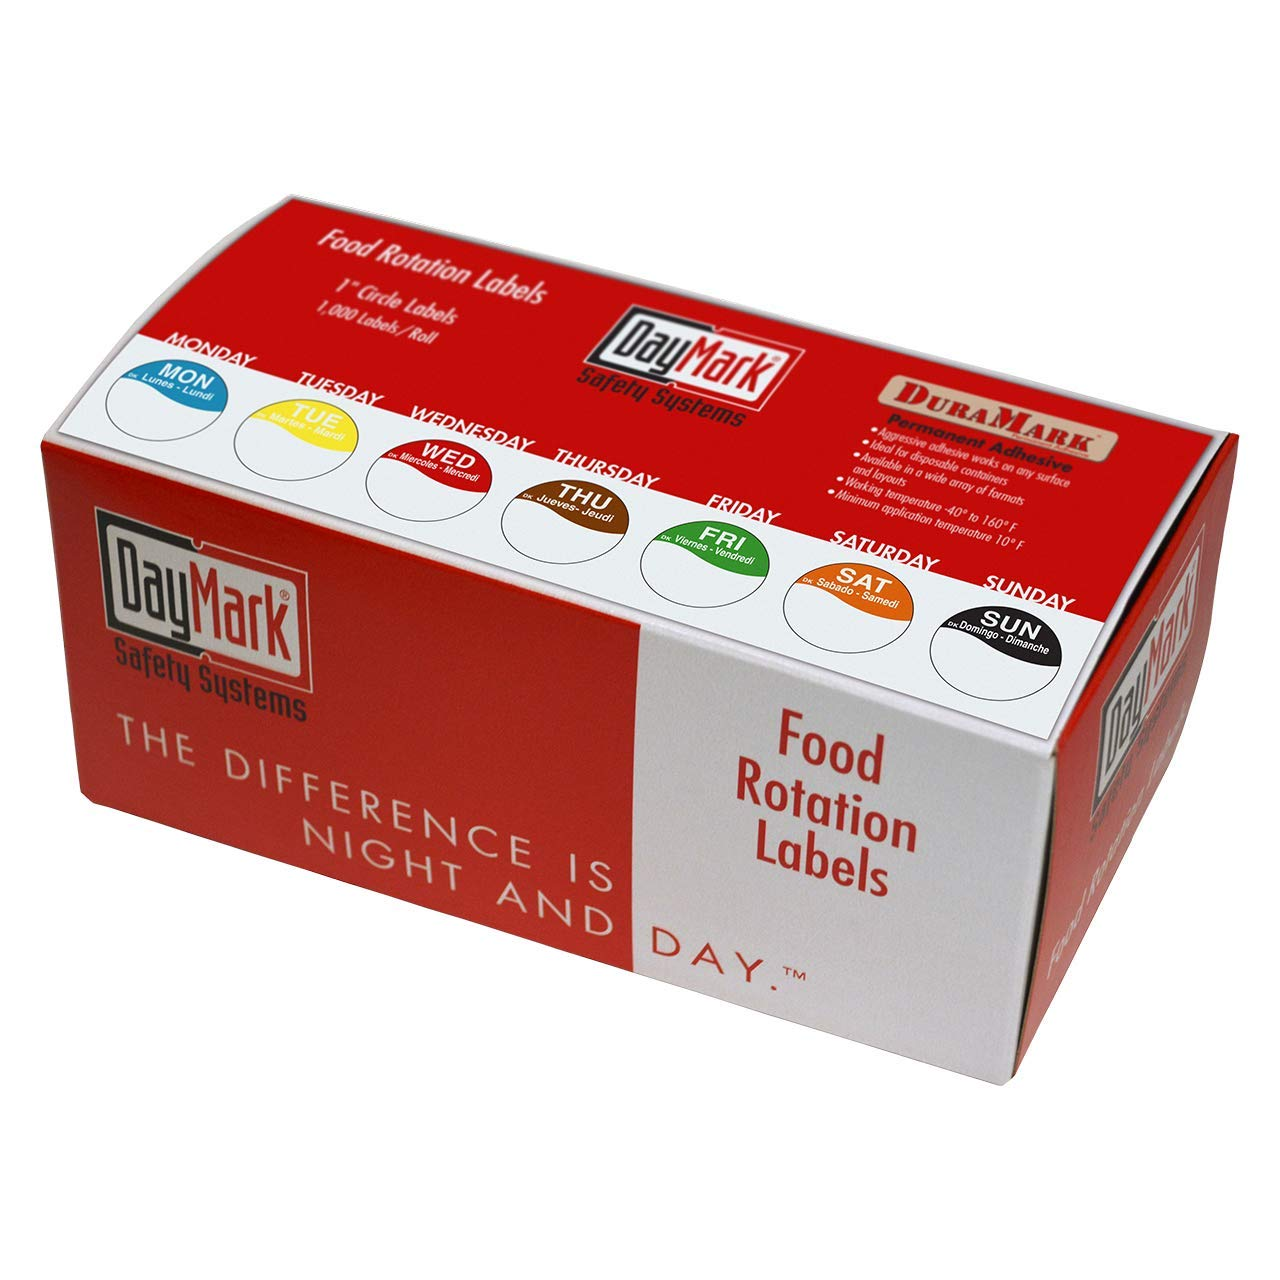 Monday-Sunday Dispenser Box Included Case of 12 DayMark Day of The Week 1 Removable Labels